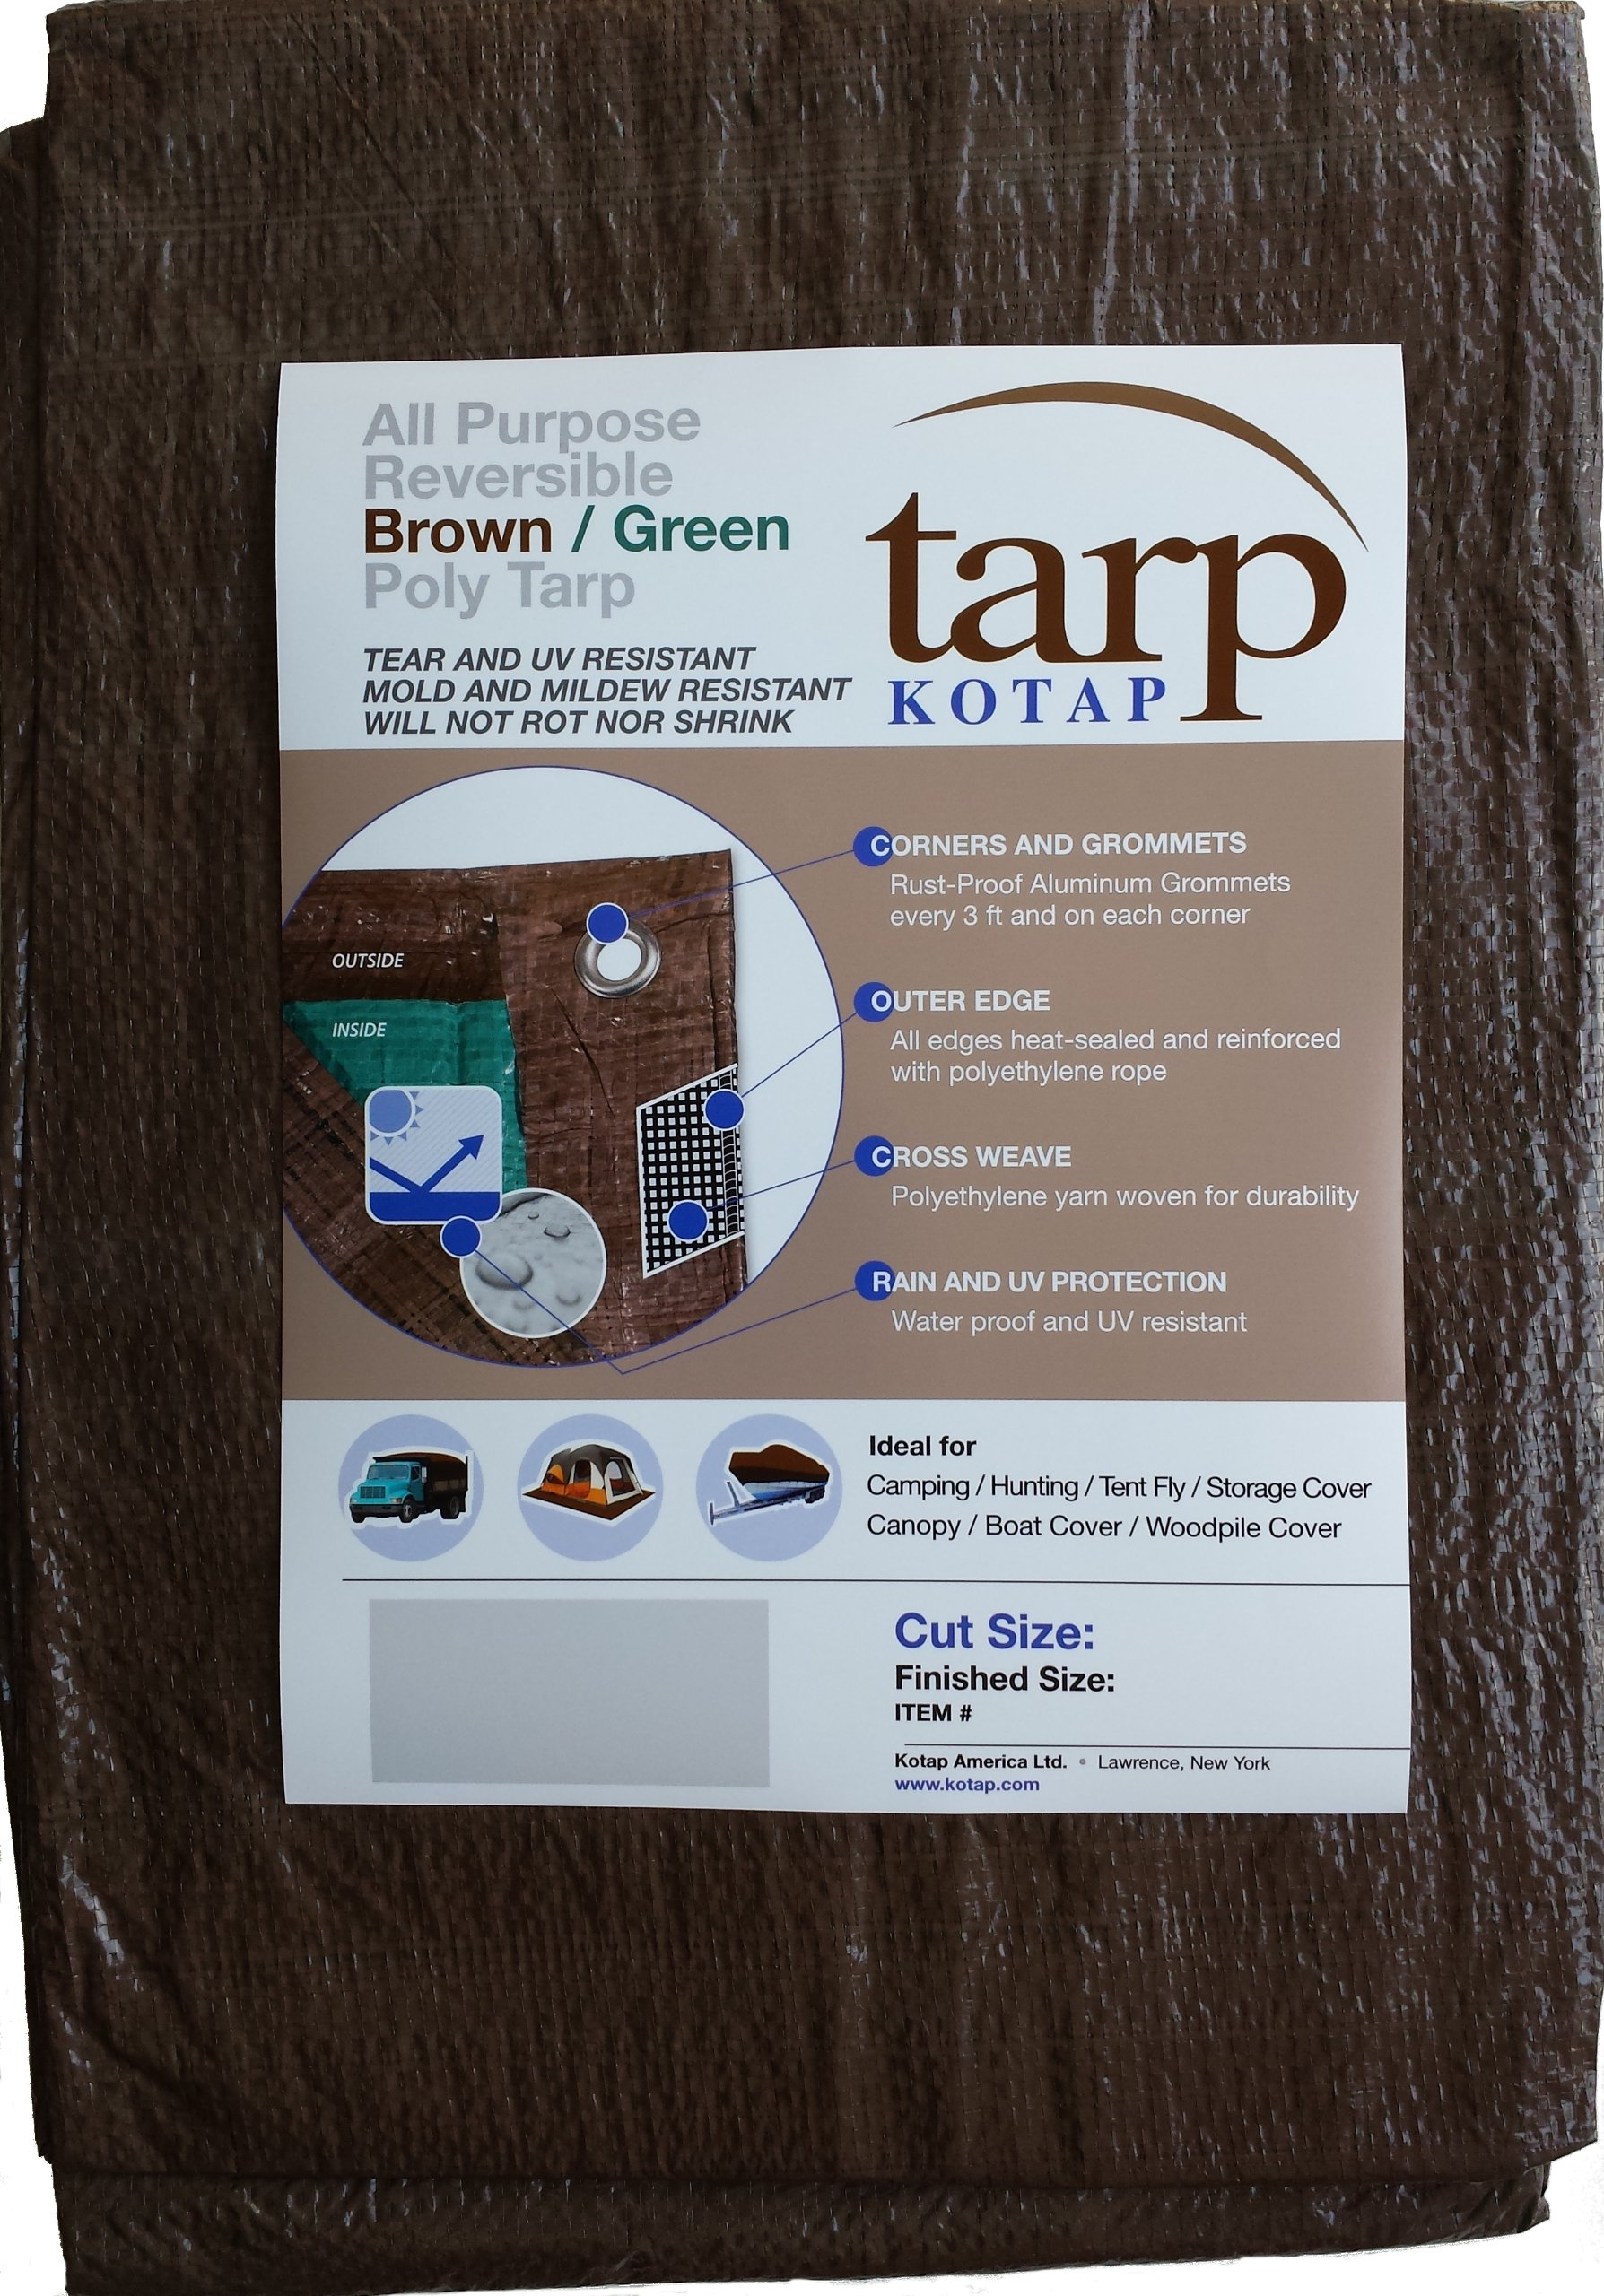 Kotap 12-ft x 25-ft Reversible Brown/Green Poly Tarp, Item: TBG-1225